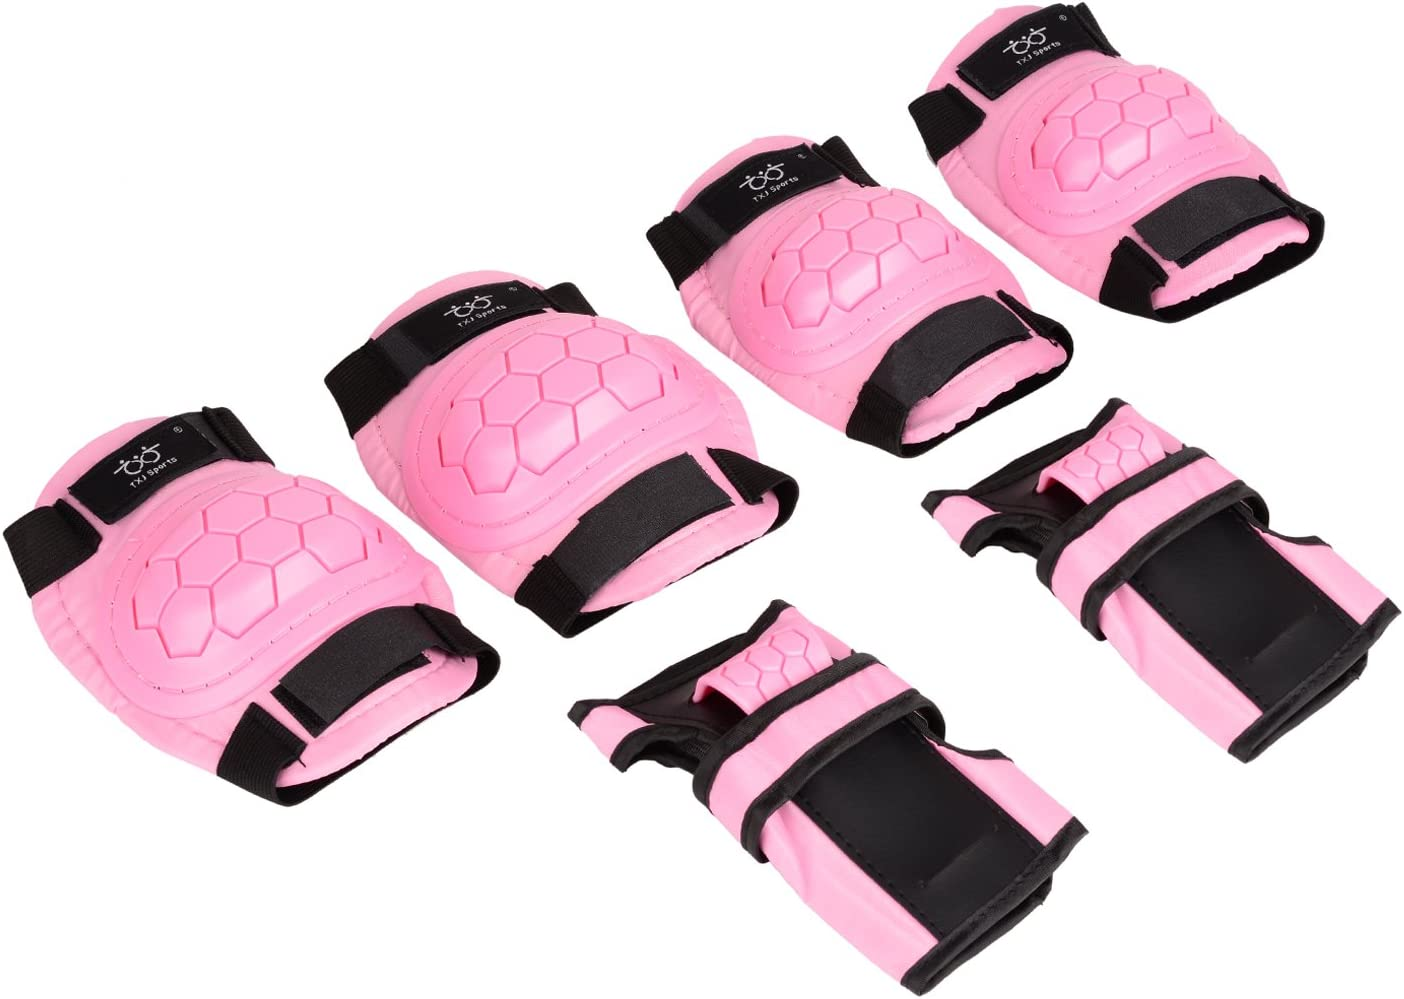 Kids Knee Pads Elbow Pads and Wrist Guards Protective Gear Set Skateboard Pads for Skating Rollerblading BMX Scooter Cycling